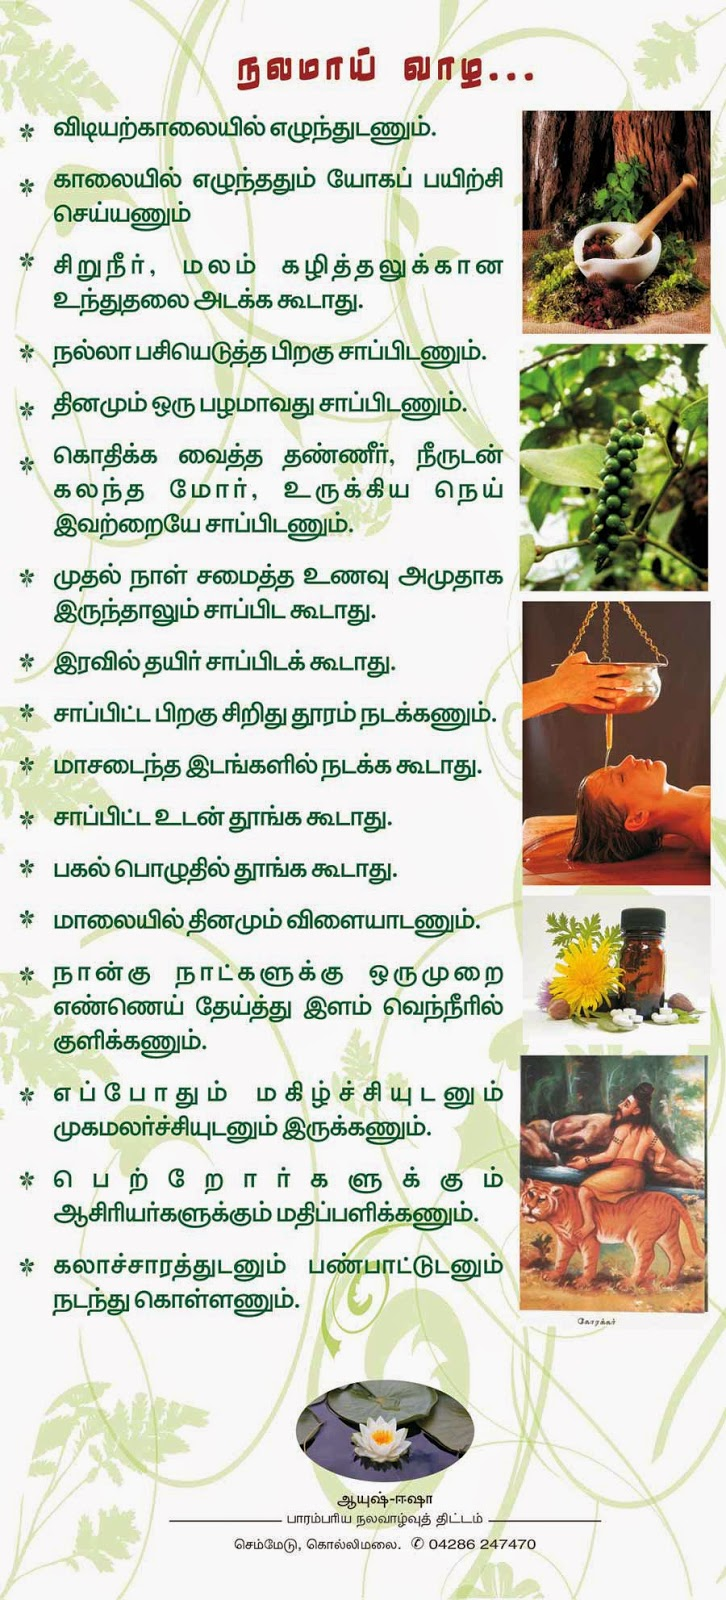 Tamil Health Tips Health Tips In Urdu For Women Of The Day Images For Men For  For Summer In Urdu For Man In Telugu Photos